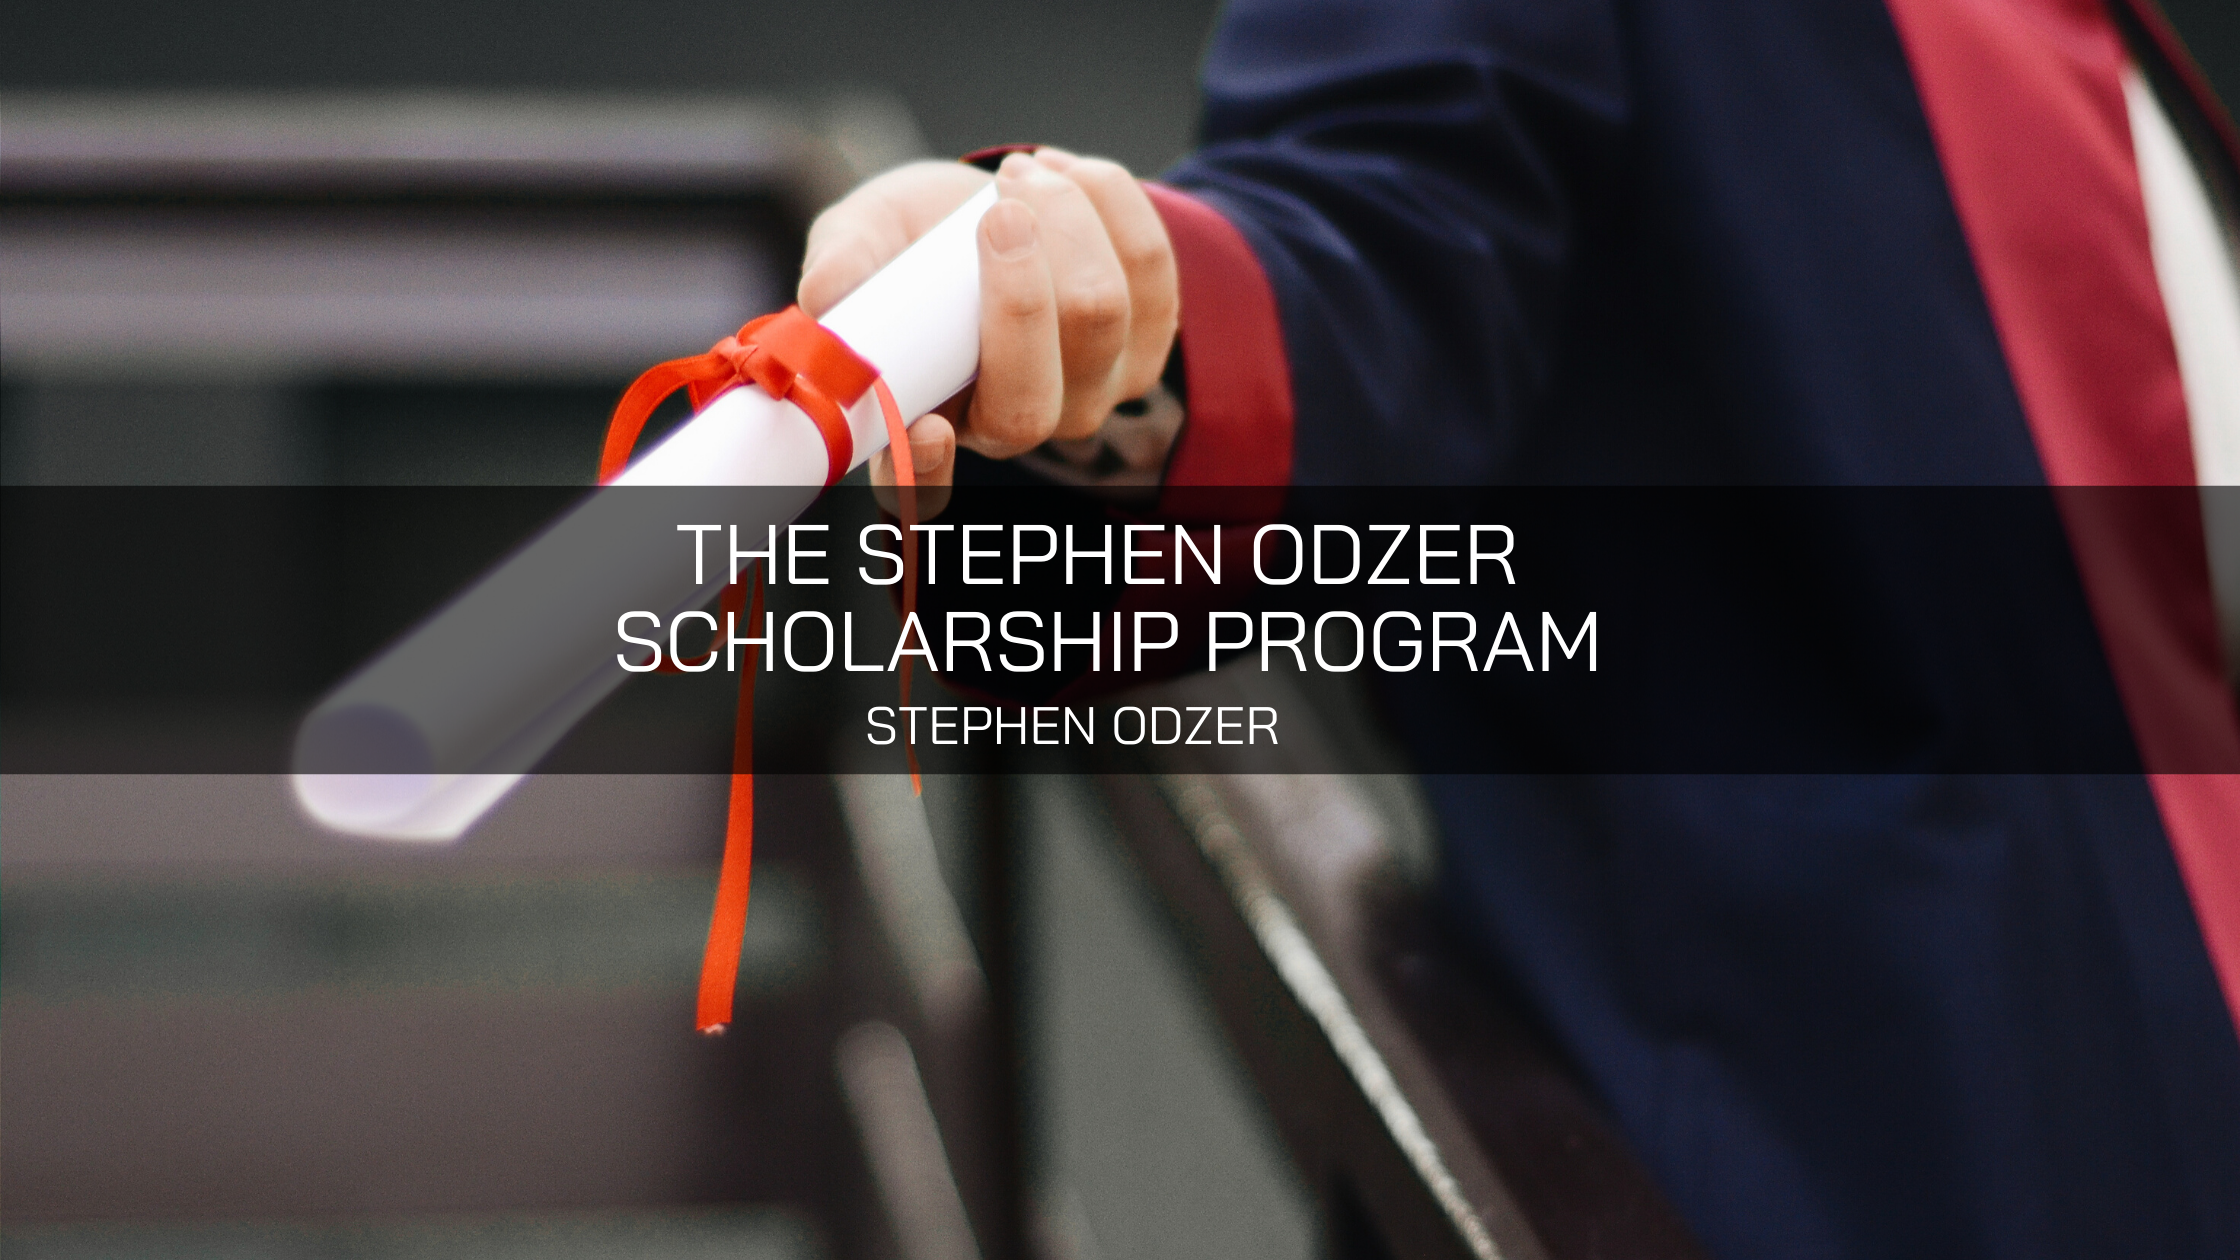 The Stephen Odzer Scholarship Program is Steven Odzer's Latest Project